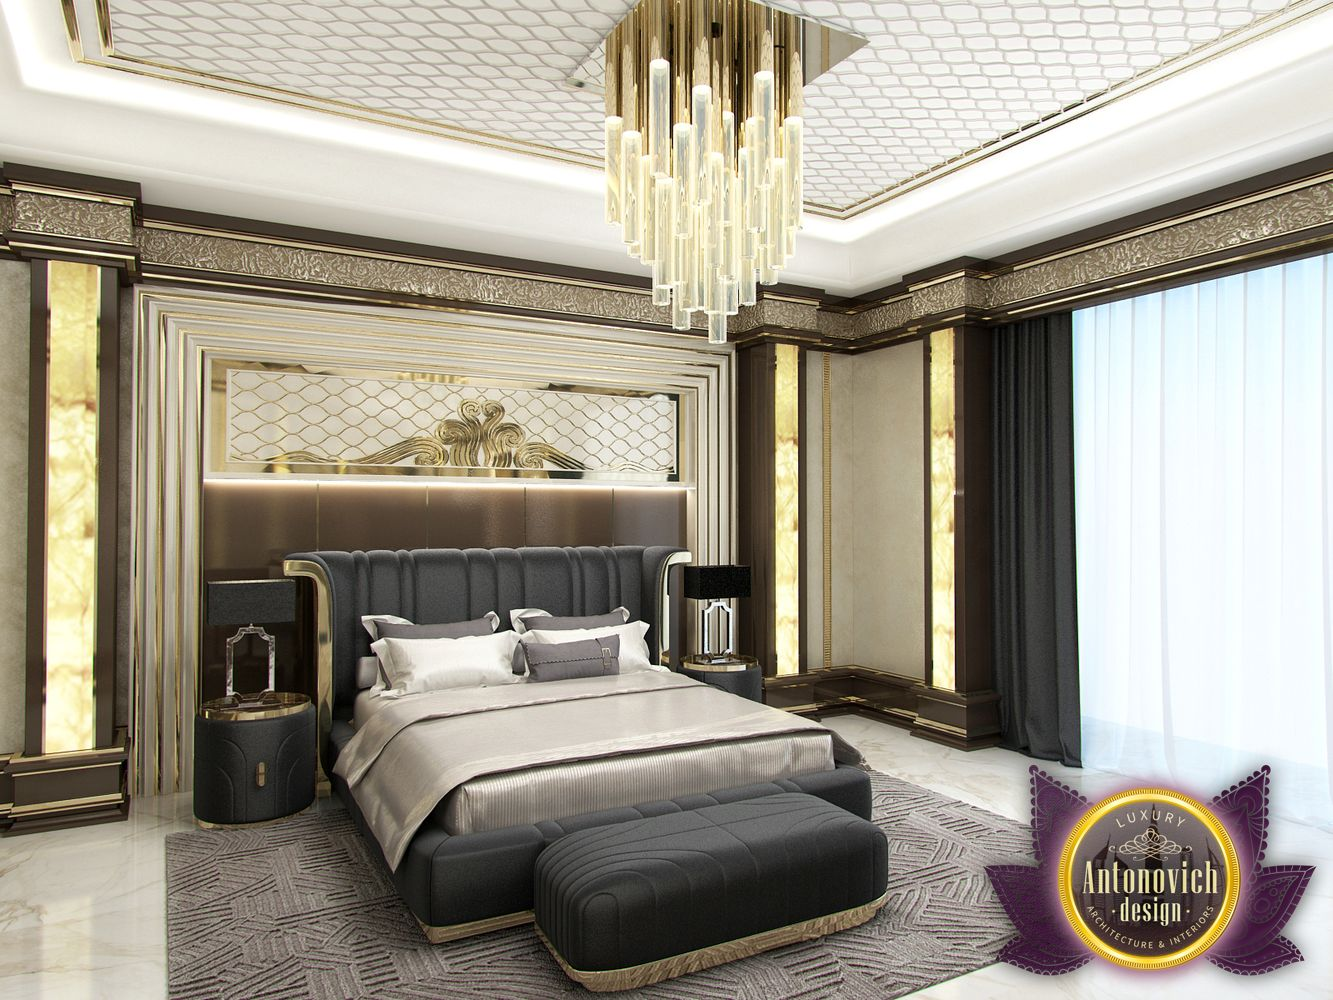 Luxury antonovich design uae master bedroom in modern for Bedroom contemporary interior design